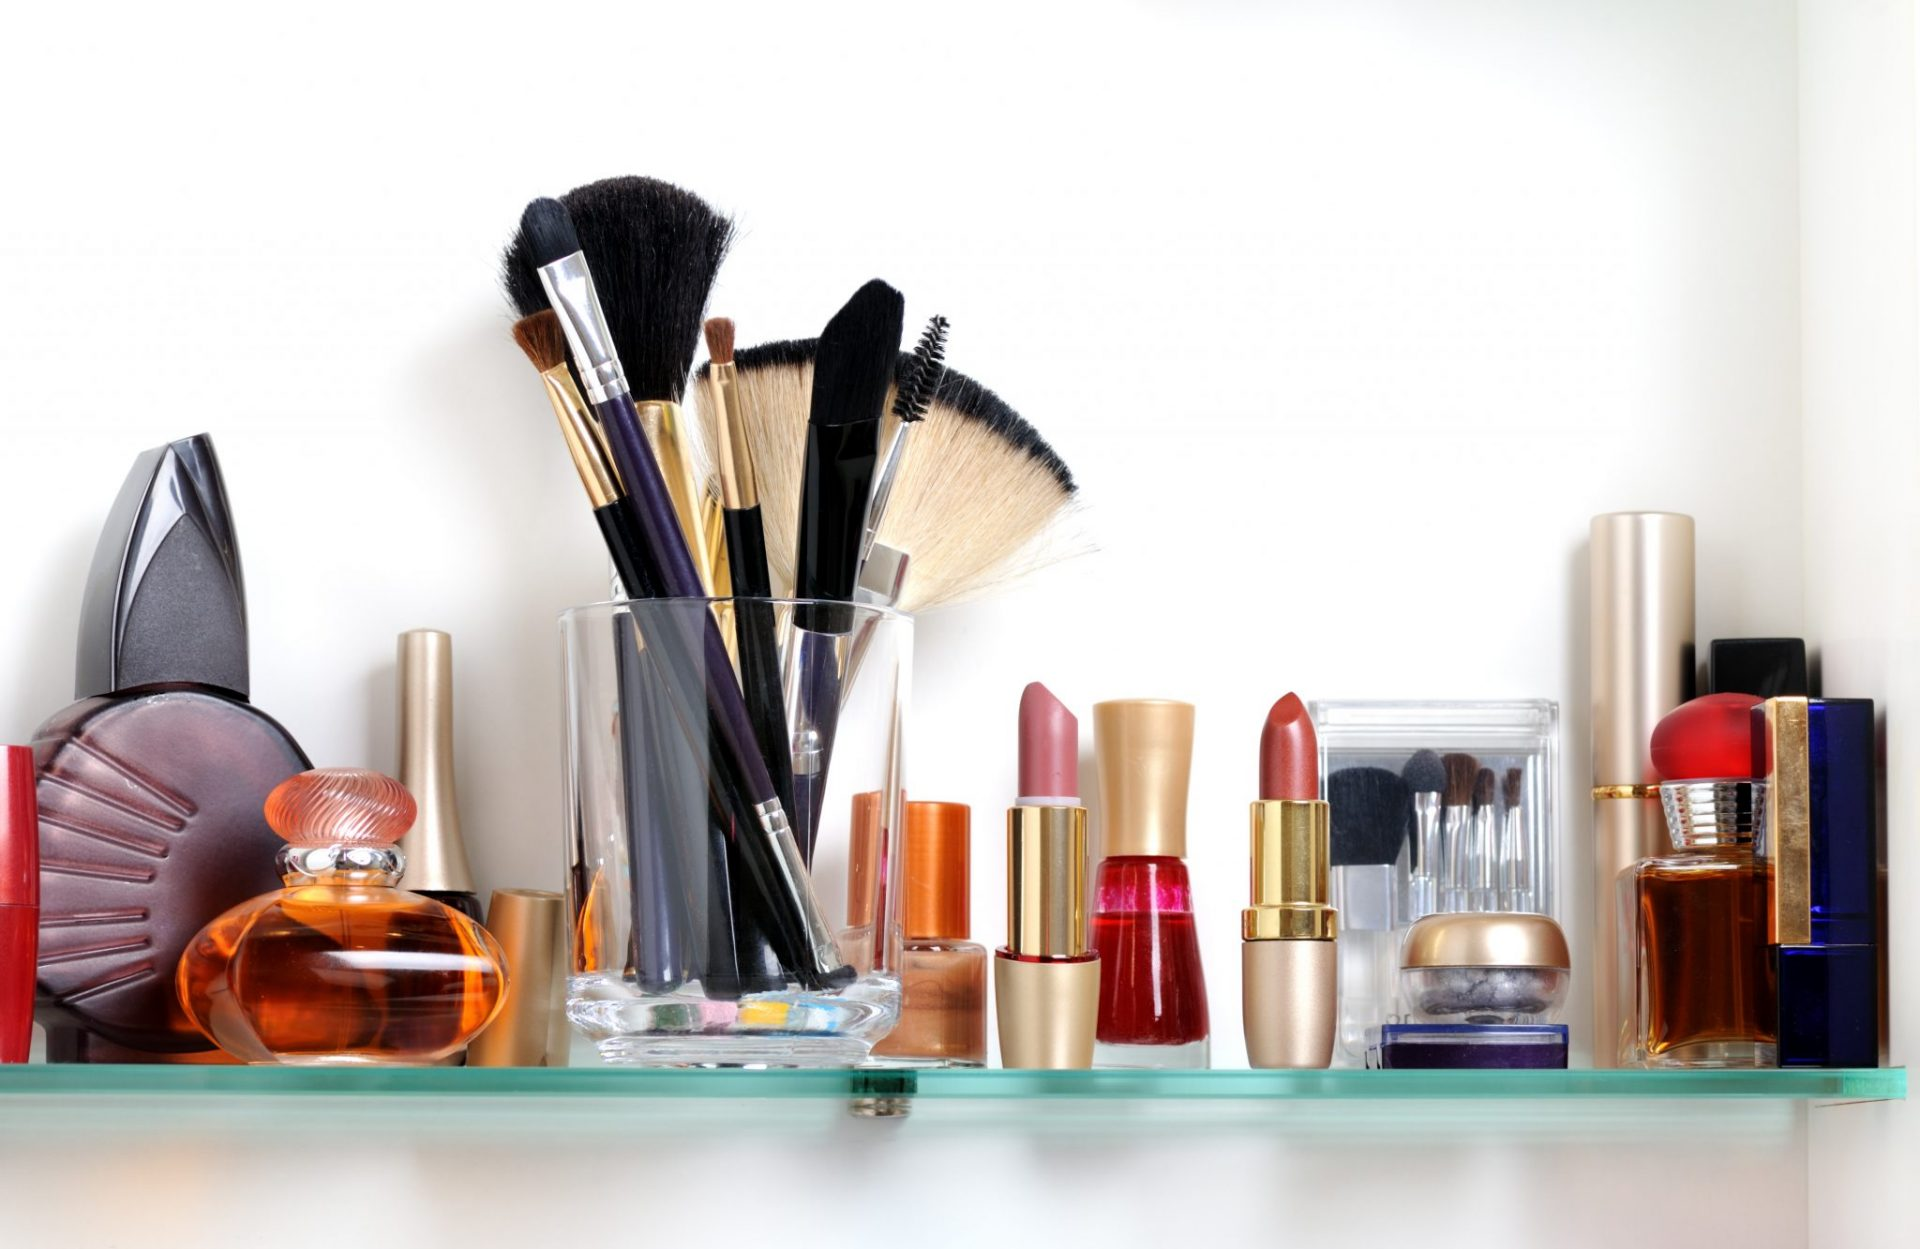 personal care toxic chemicals beauty